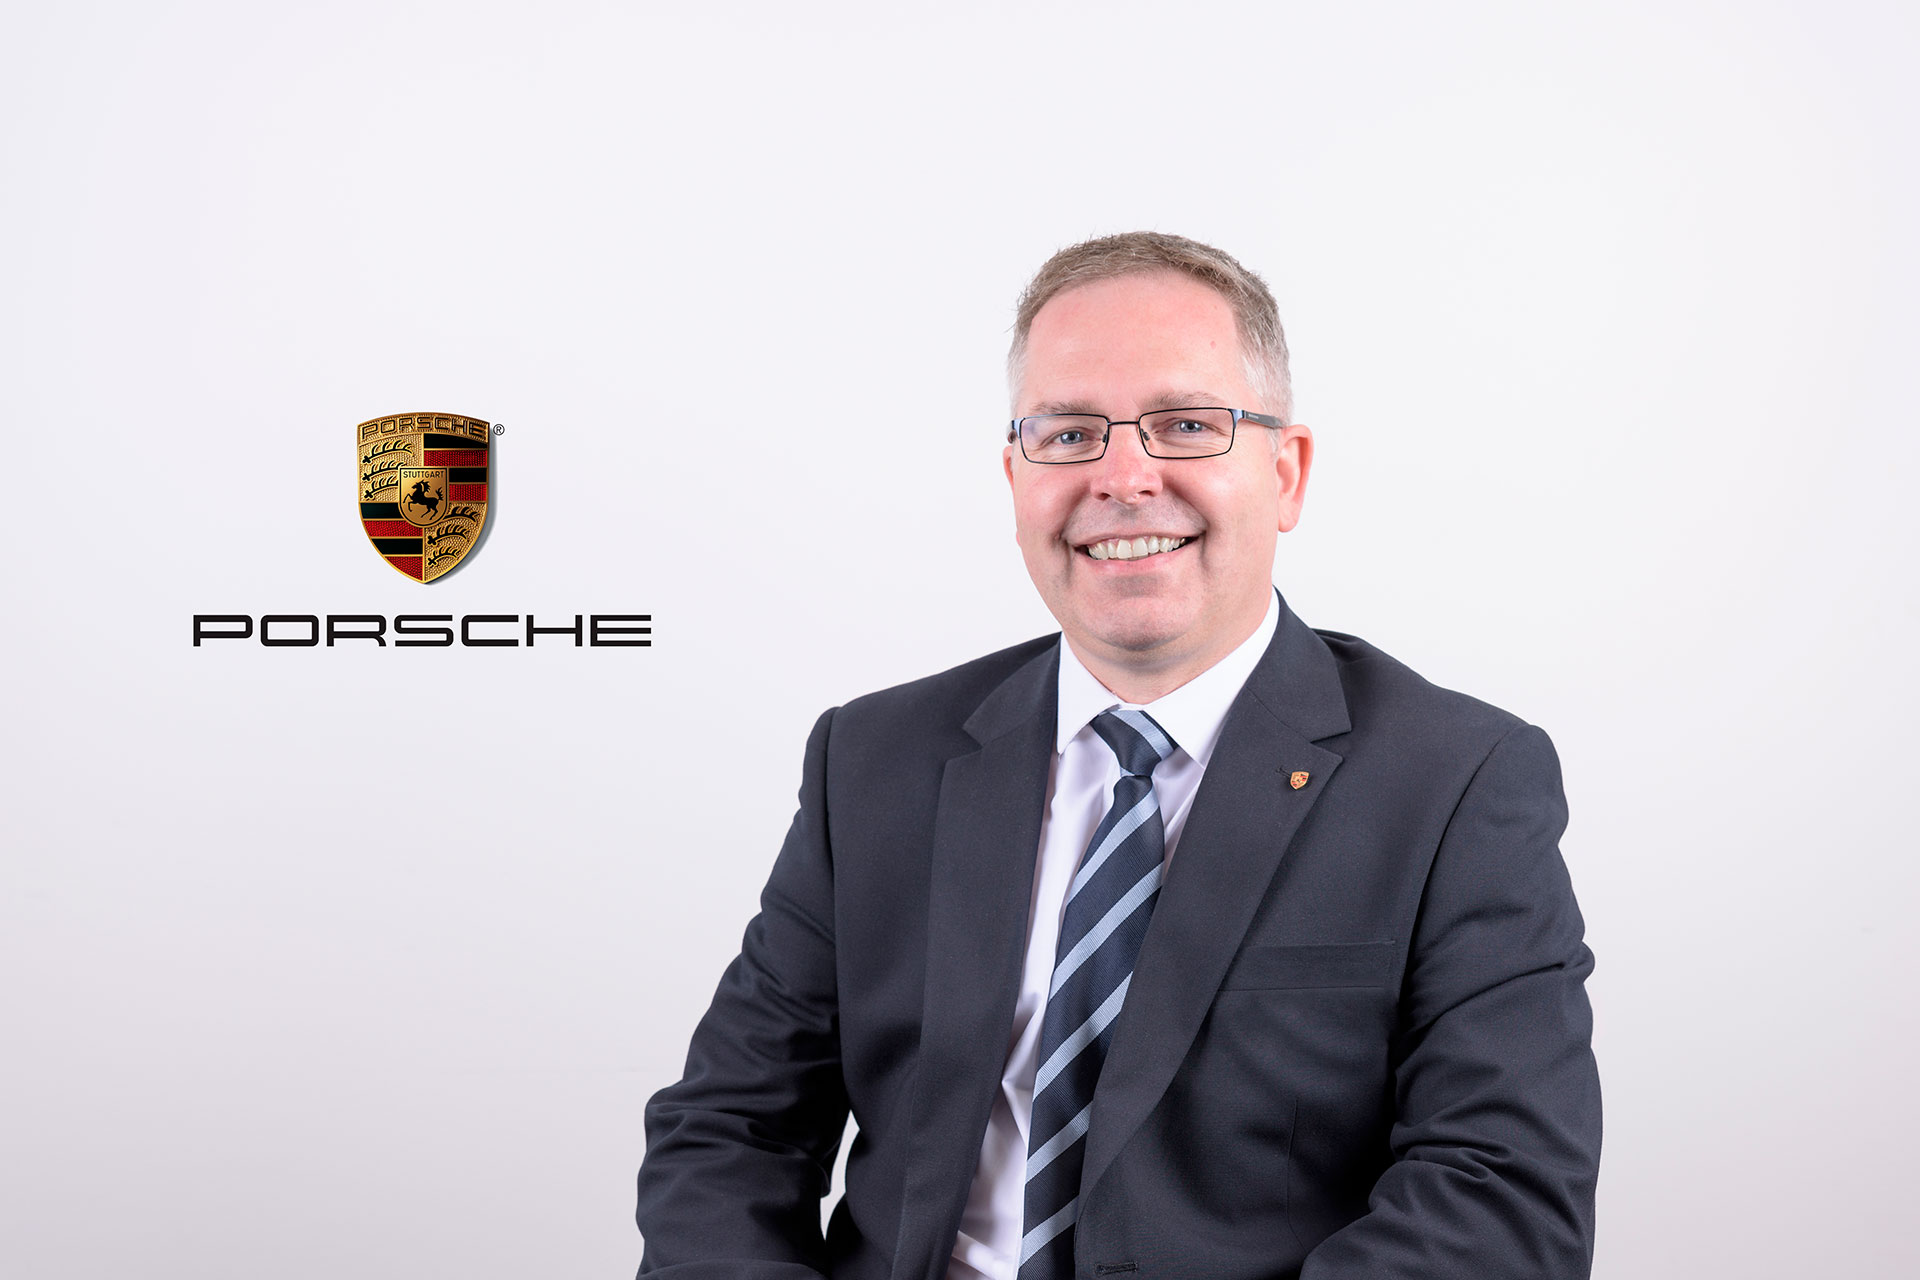 Porsche Centre Leeds Portrait Photography IDEA Design Photographer Sheffield